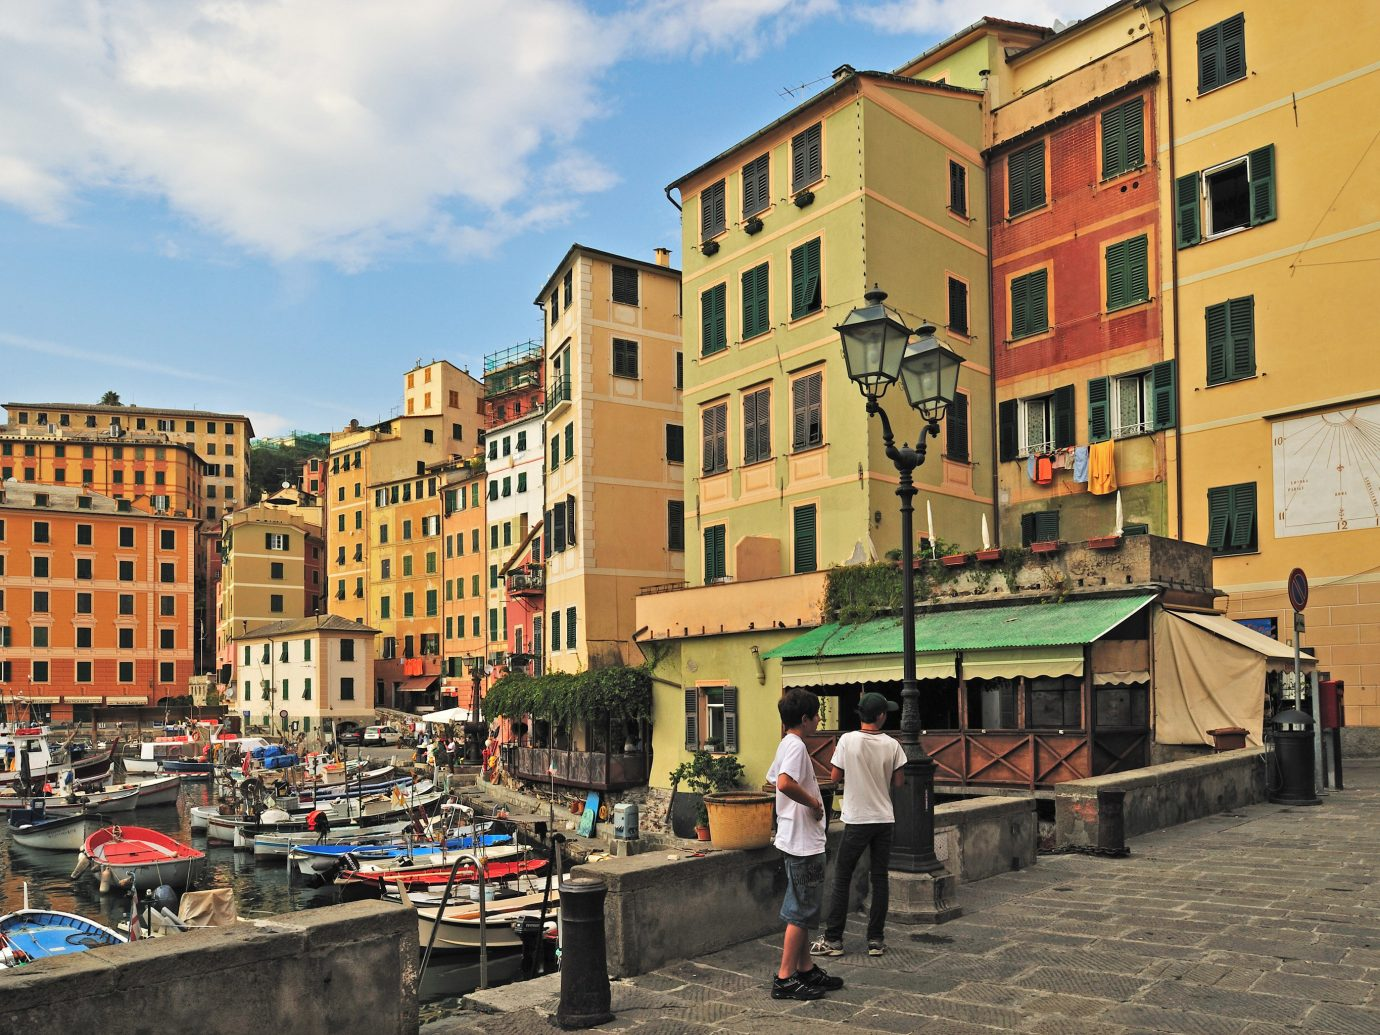 Italy Trip Ideas outdoor waterway neighbourhood City Town water urban area Canal mixed use marketplace sky building street house people facade channel vehicle tourism Downtown